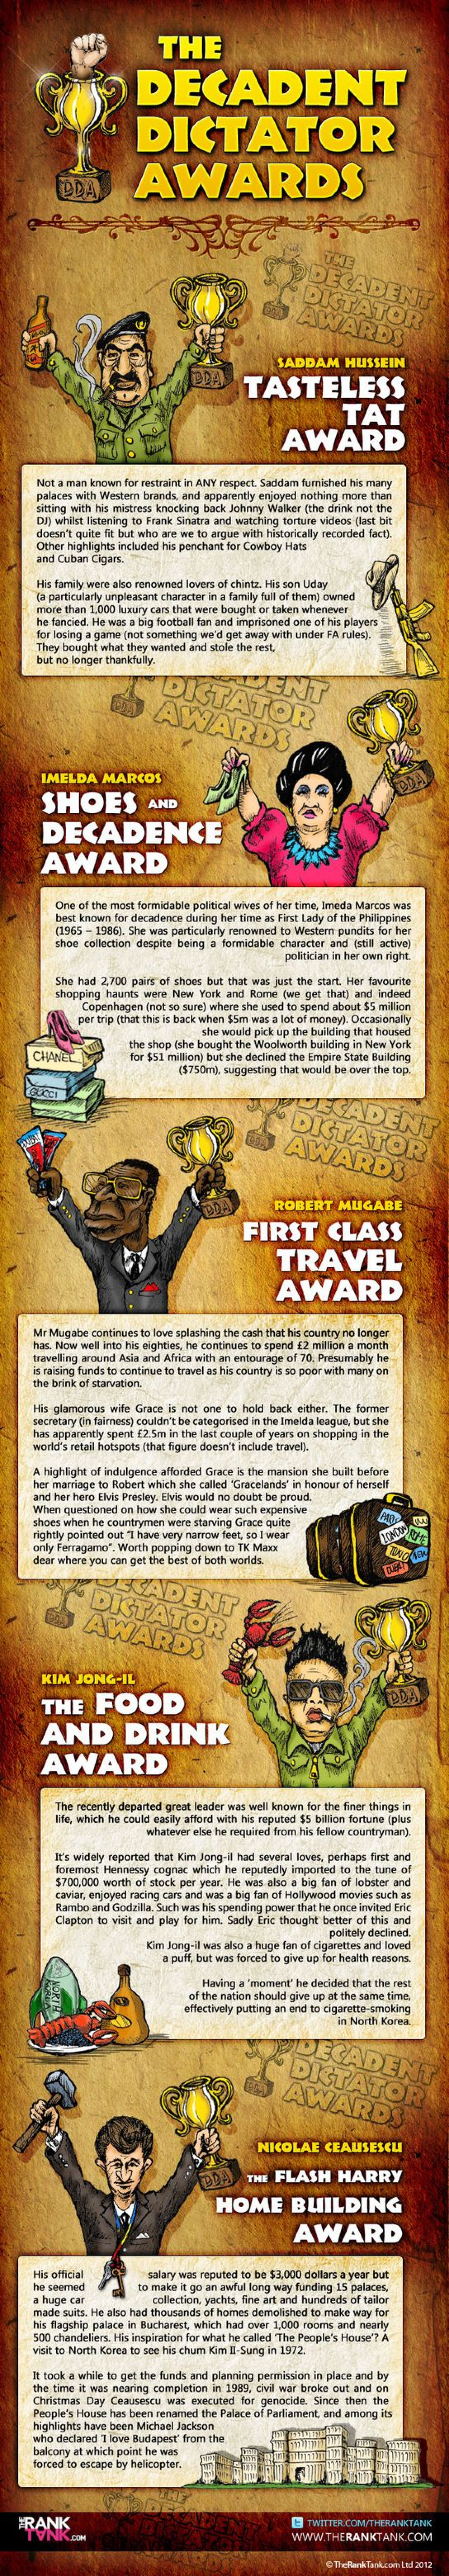 The Decadent Dictator Awards Infographic